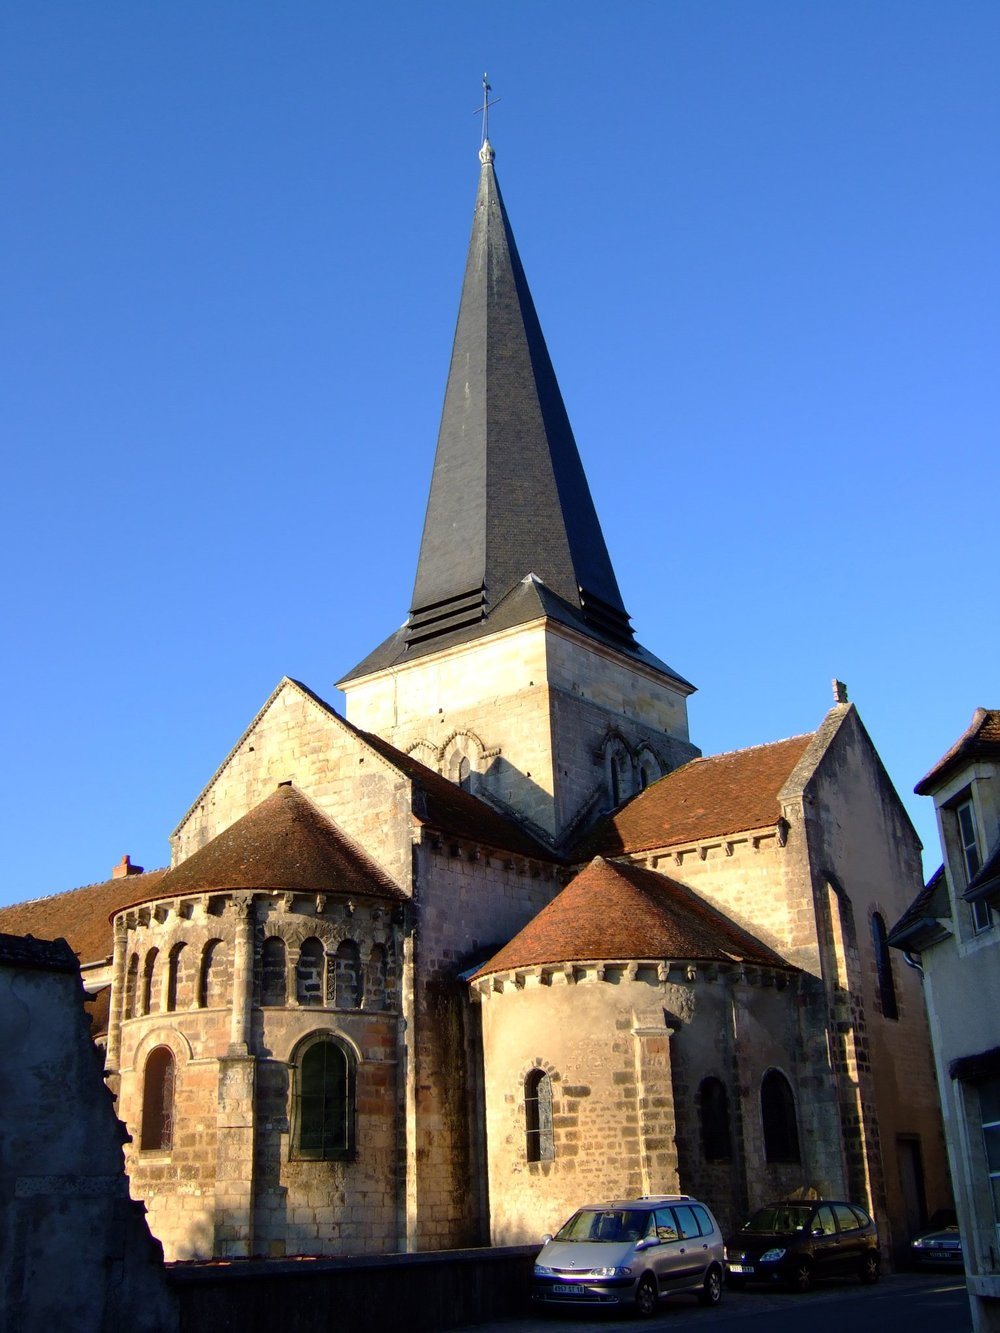 The mayor of the central French town of Saint-Amand-Montrond (pictured), Thierry Vincon, is leading a delegation to Israel of 20 French to commemorate Yom HaShoah. Credit: Wikimedia Commons.